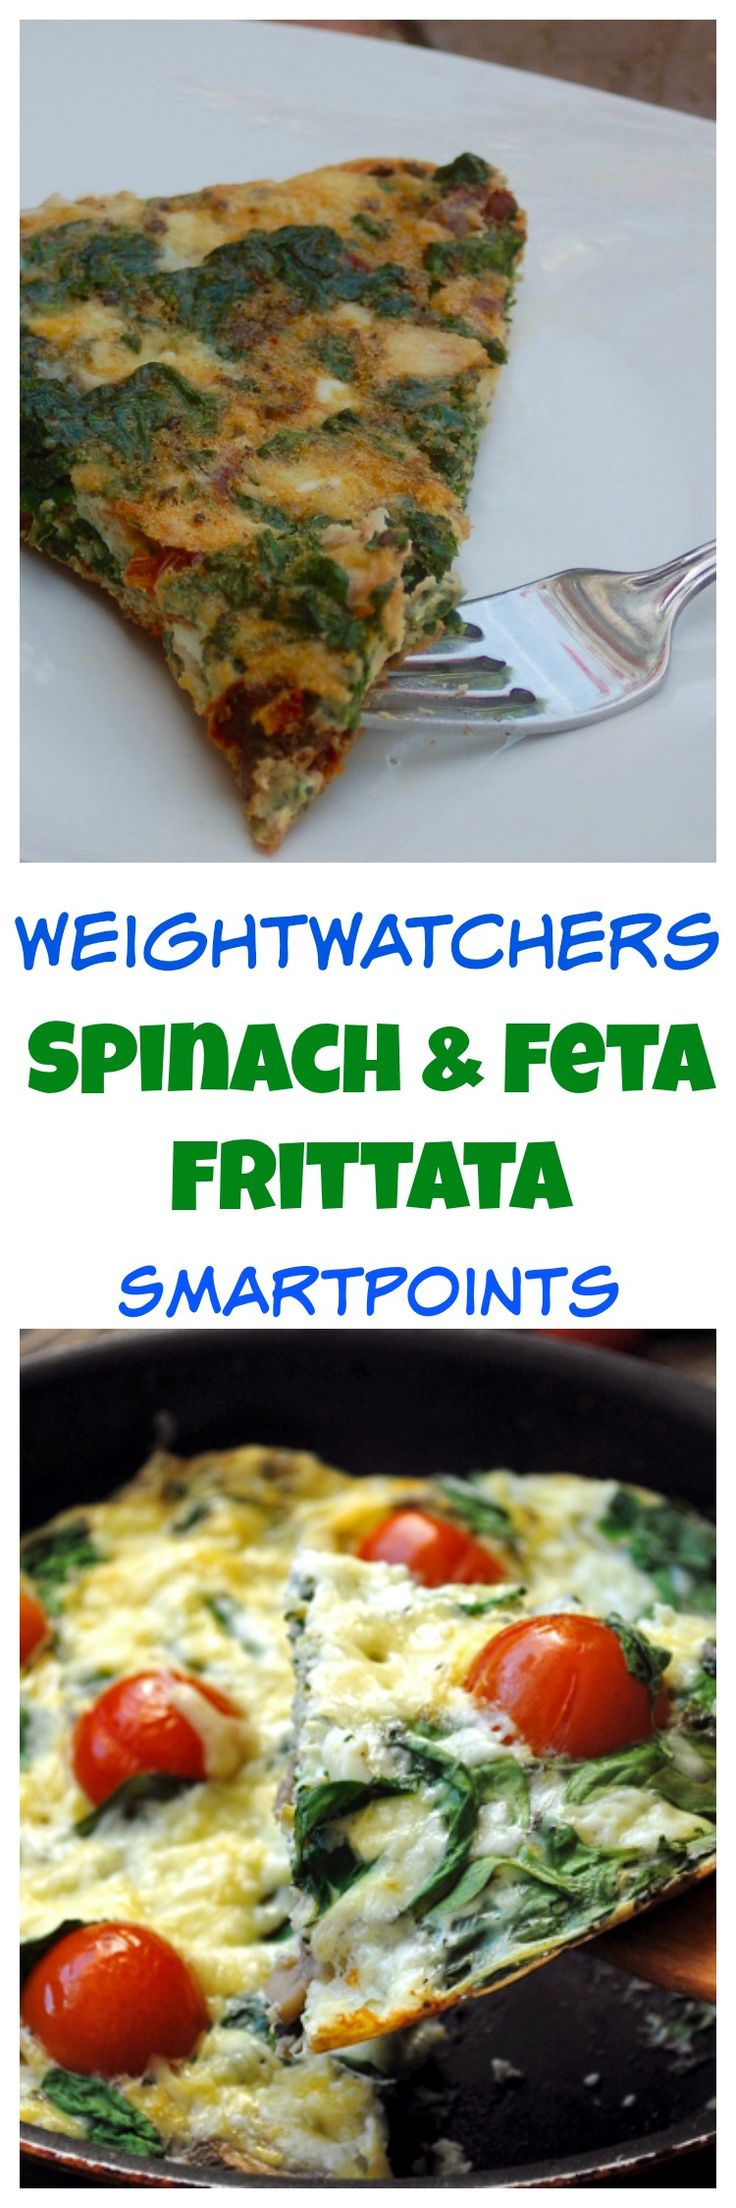 Easy and Delicious Weight Watchers Spinach Frittata Recipe 4 SmartPoints.